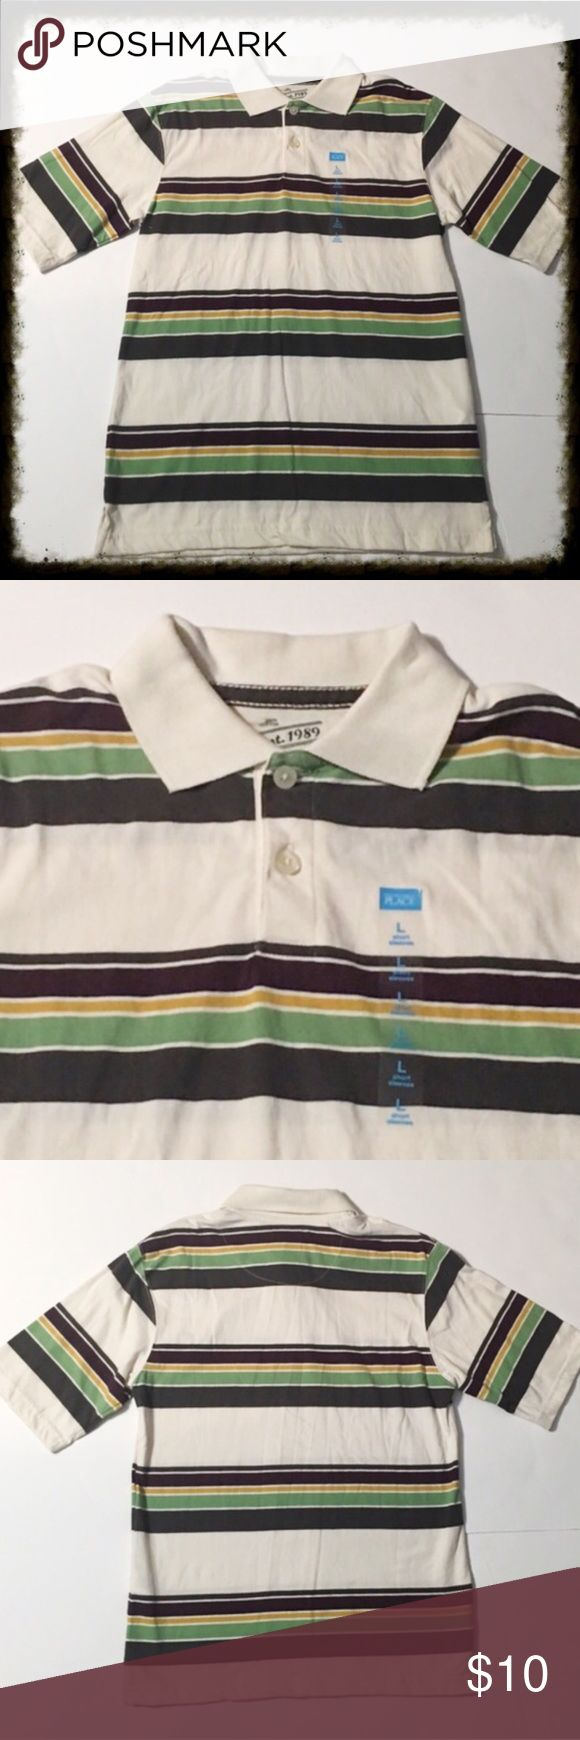 ❎3/$15 New Striped Polo Shirt Size large10/12 NWT Children's Place Striped Polo Shirt. New with tags. Size large 10/12. 🐶Bundle 3 $10 items for $15. Add them to a bundle, offer $15, & I will accept. 🐶 Shirts & Tops Polos